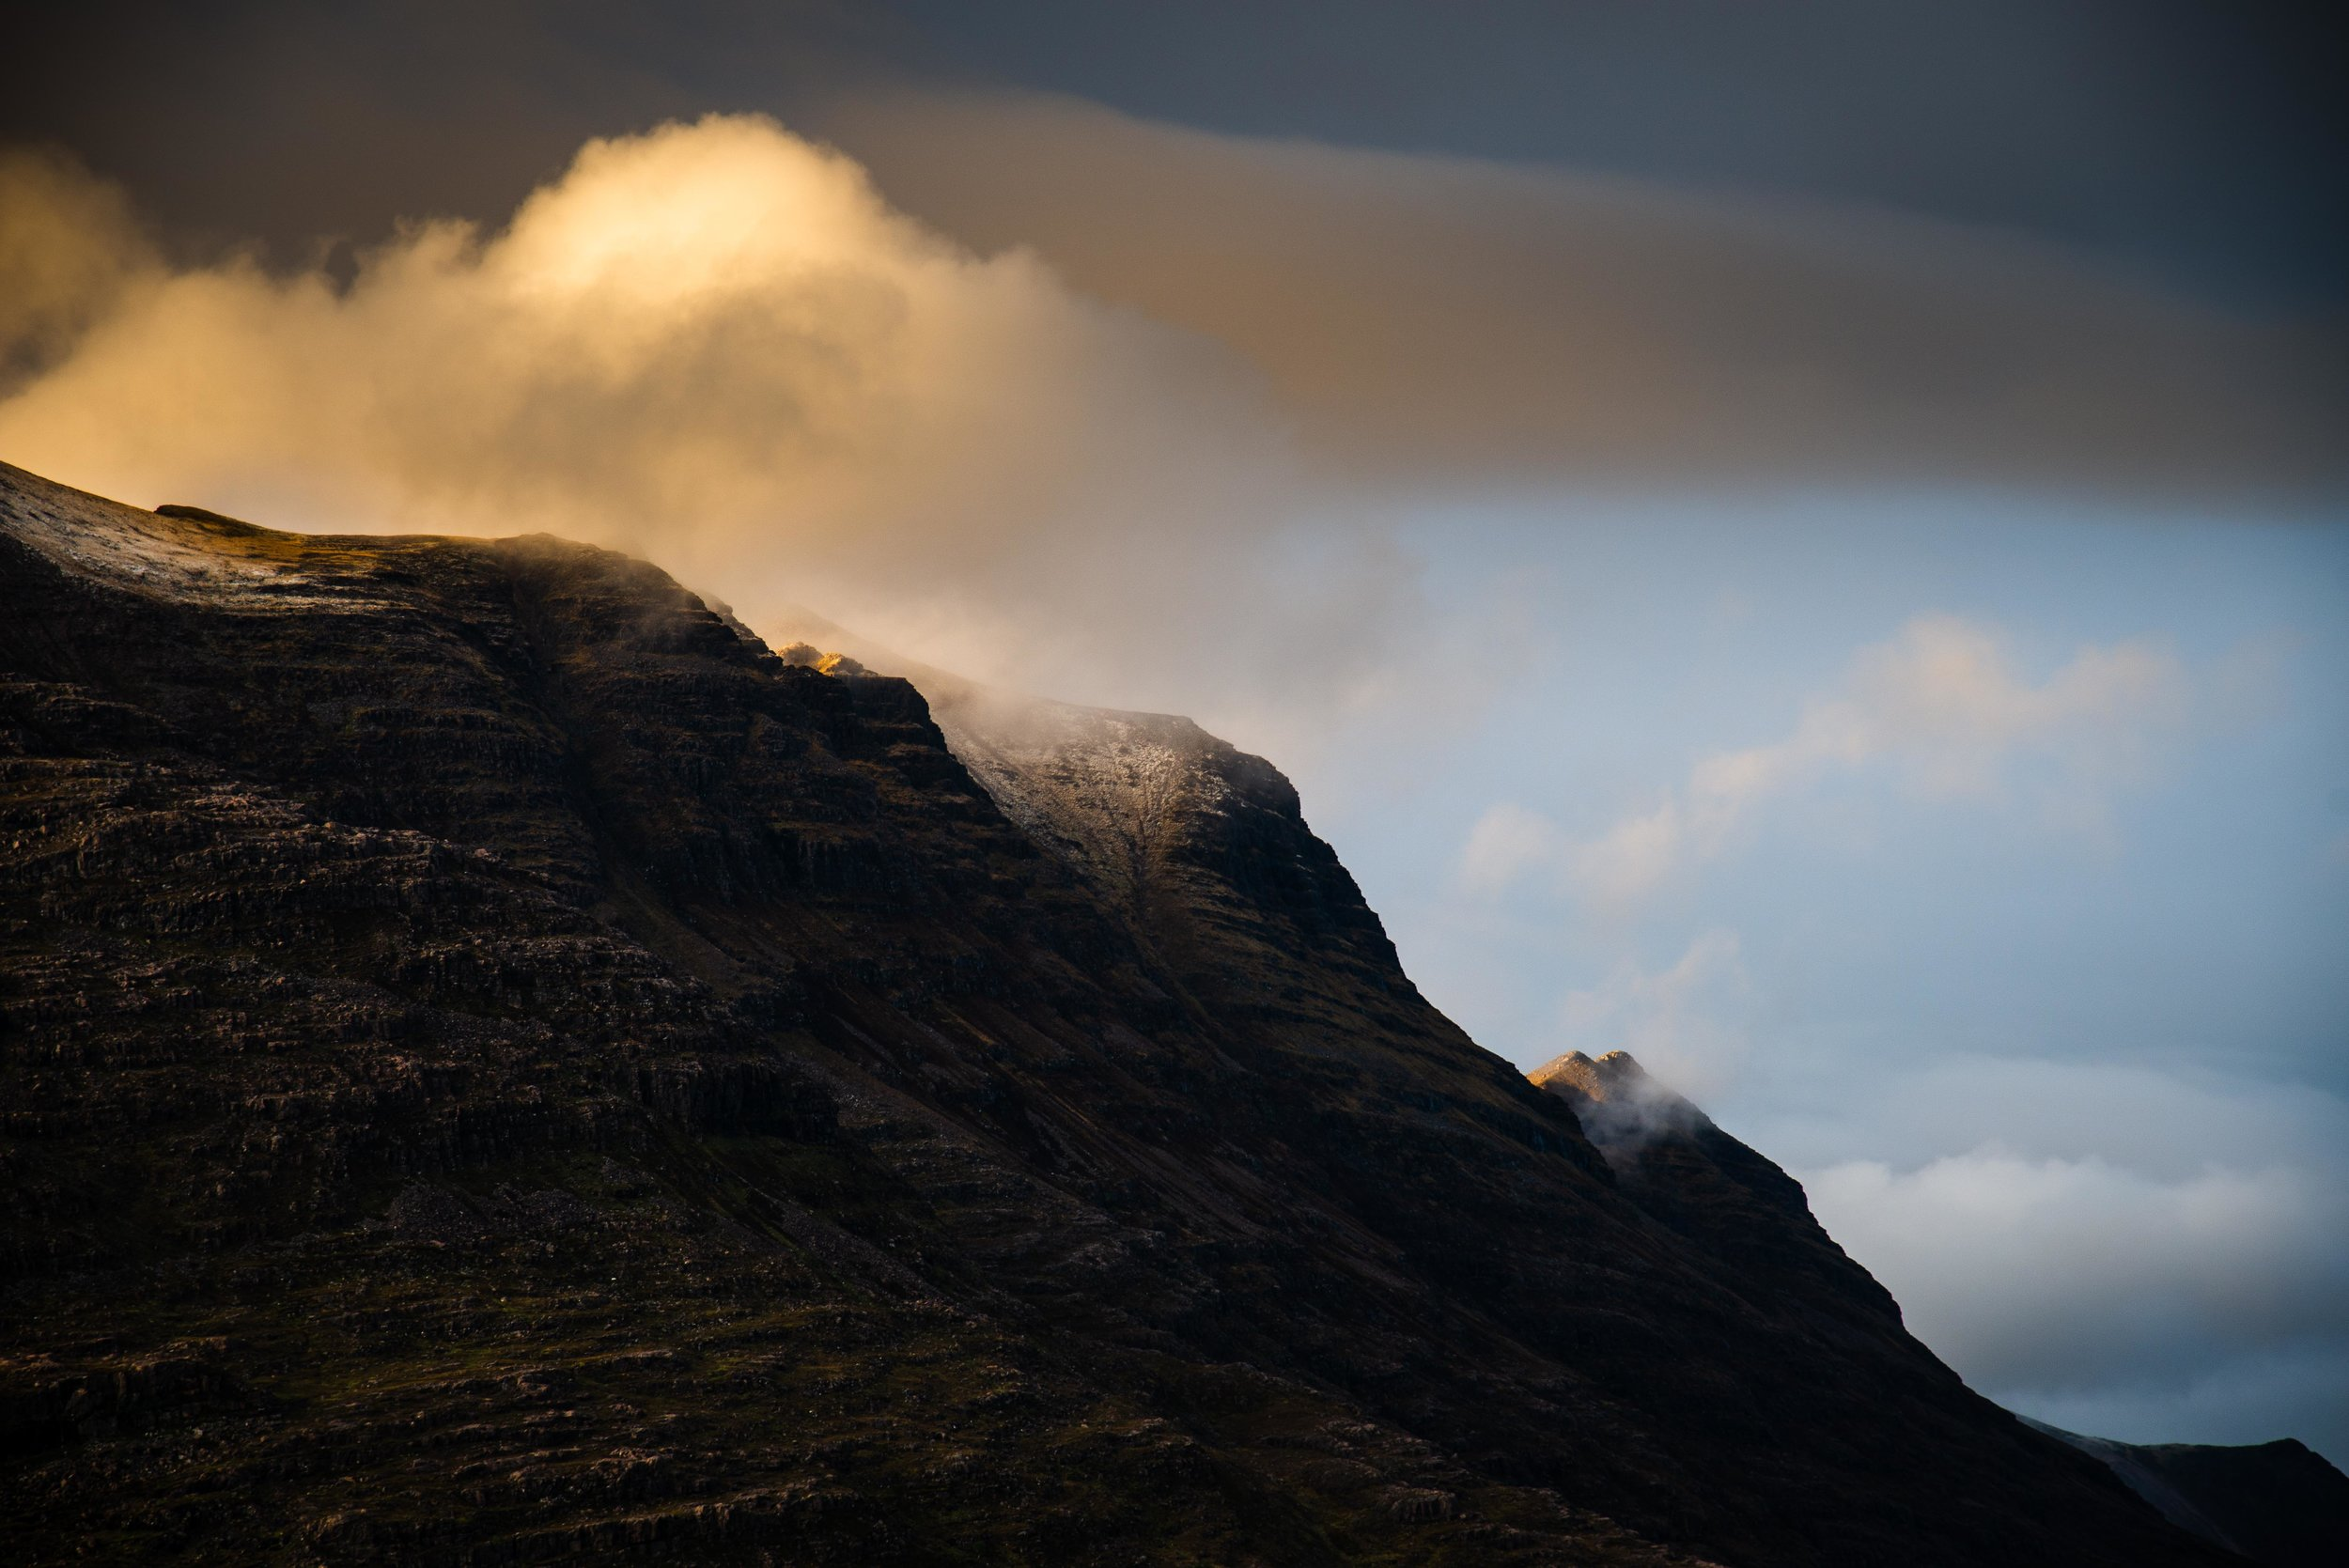 Evening light on Liathach